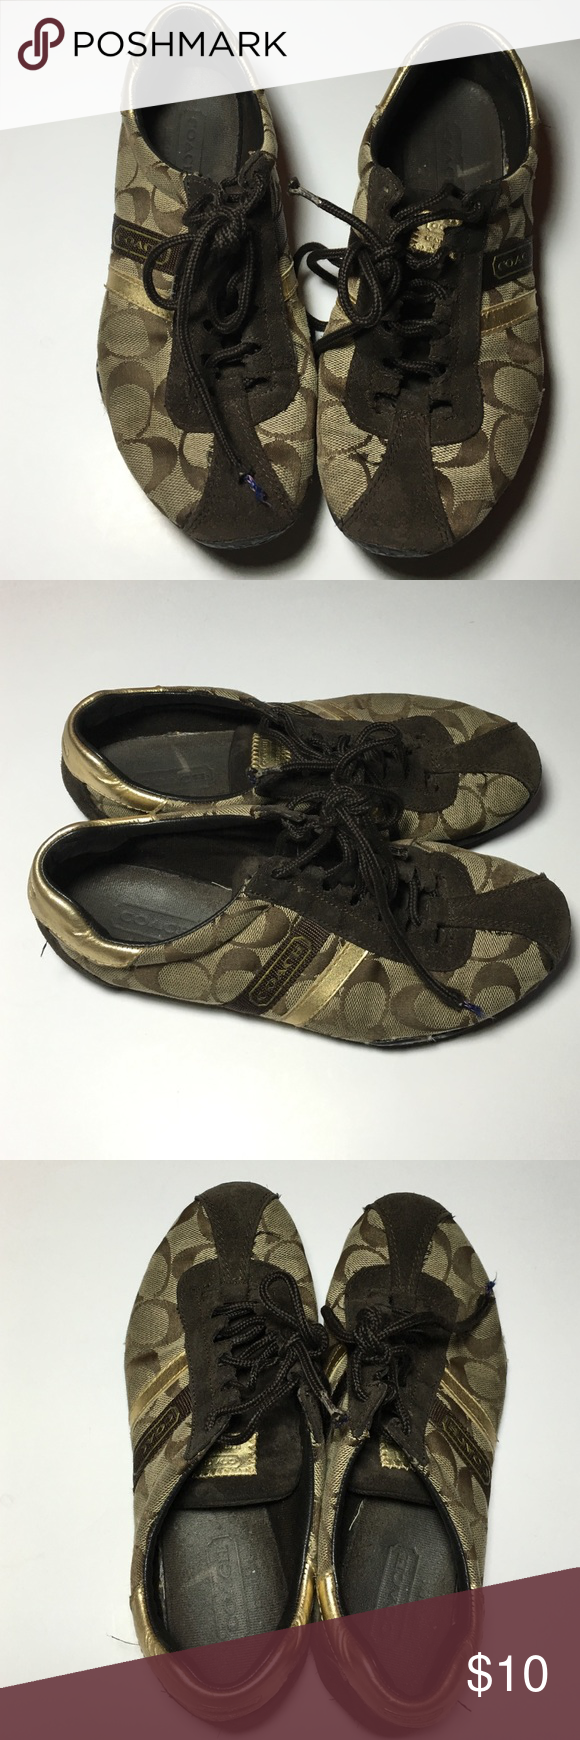 Coach Sneakers Preowned, brown monogram sneakers. Does have lots of wear, right shoe string has slightly pulled lose. Clean and need a new home! Coach Shoes Sneakers